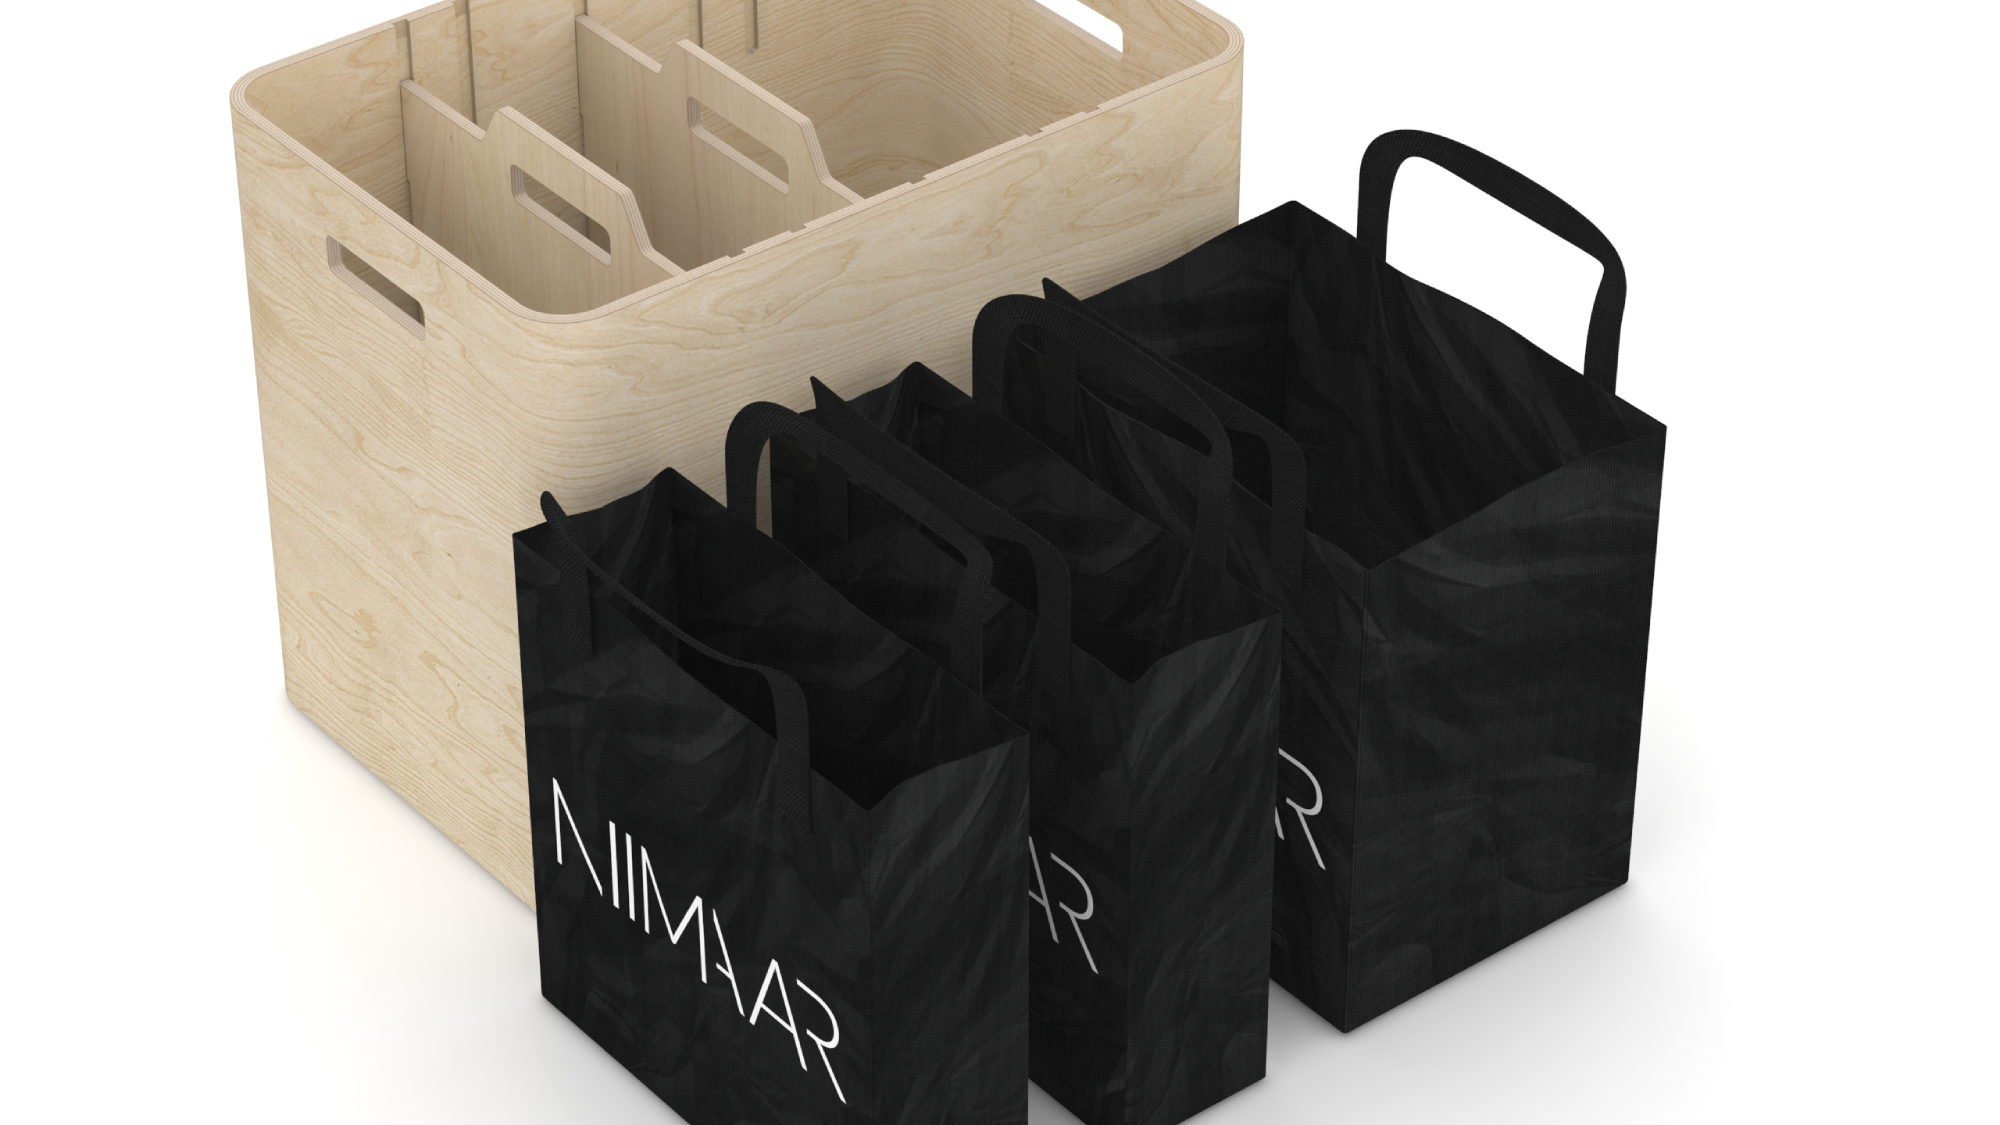 Niimaar wants to listen to customers carefully to be able to serve them products they actually need and want.